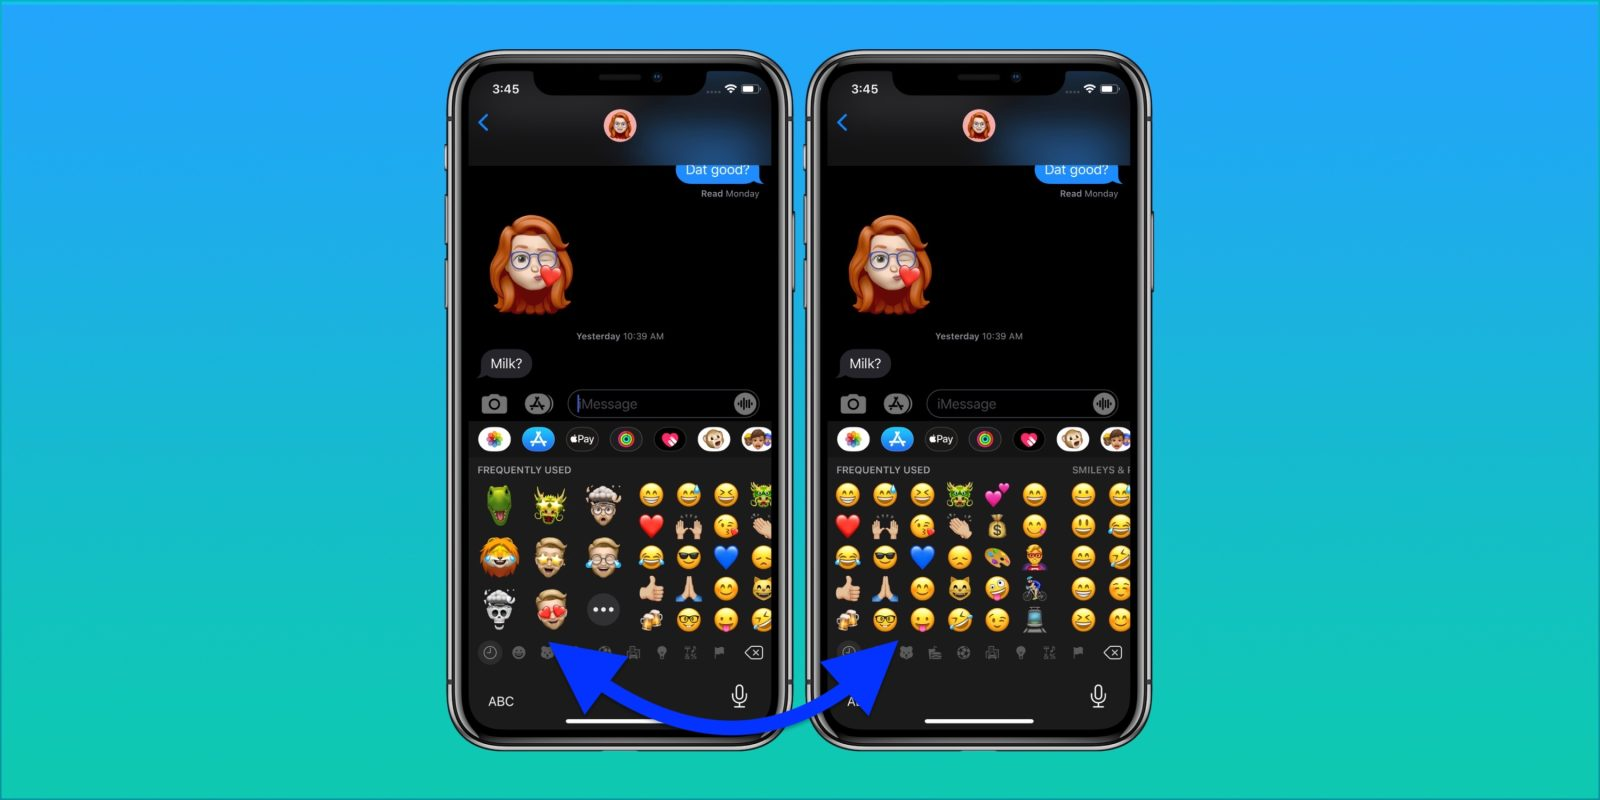 Tired of seeing Memoji Stickers on your emoji keyboard? There's a fix for that